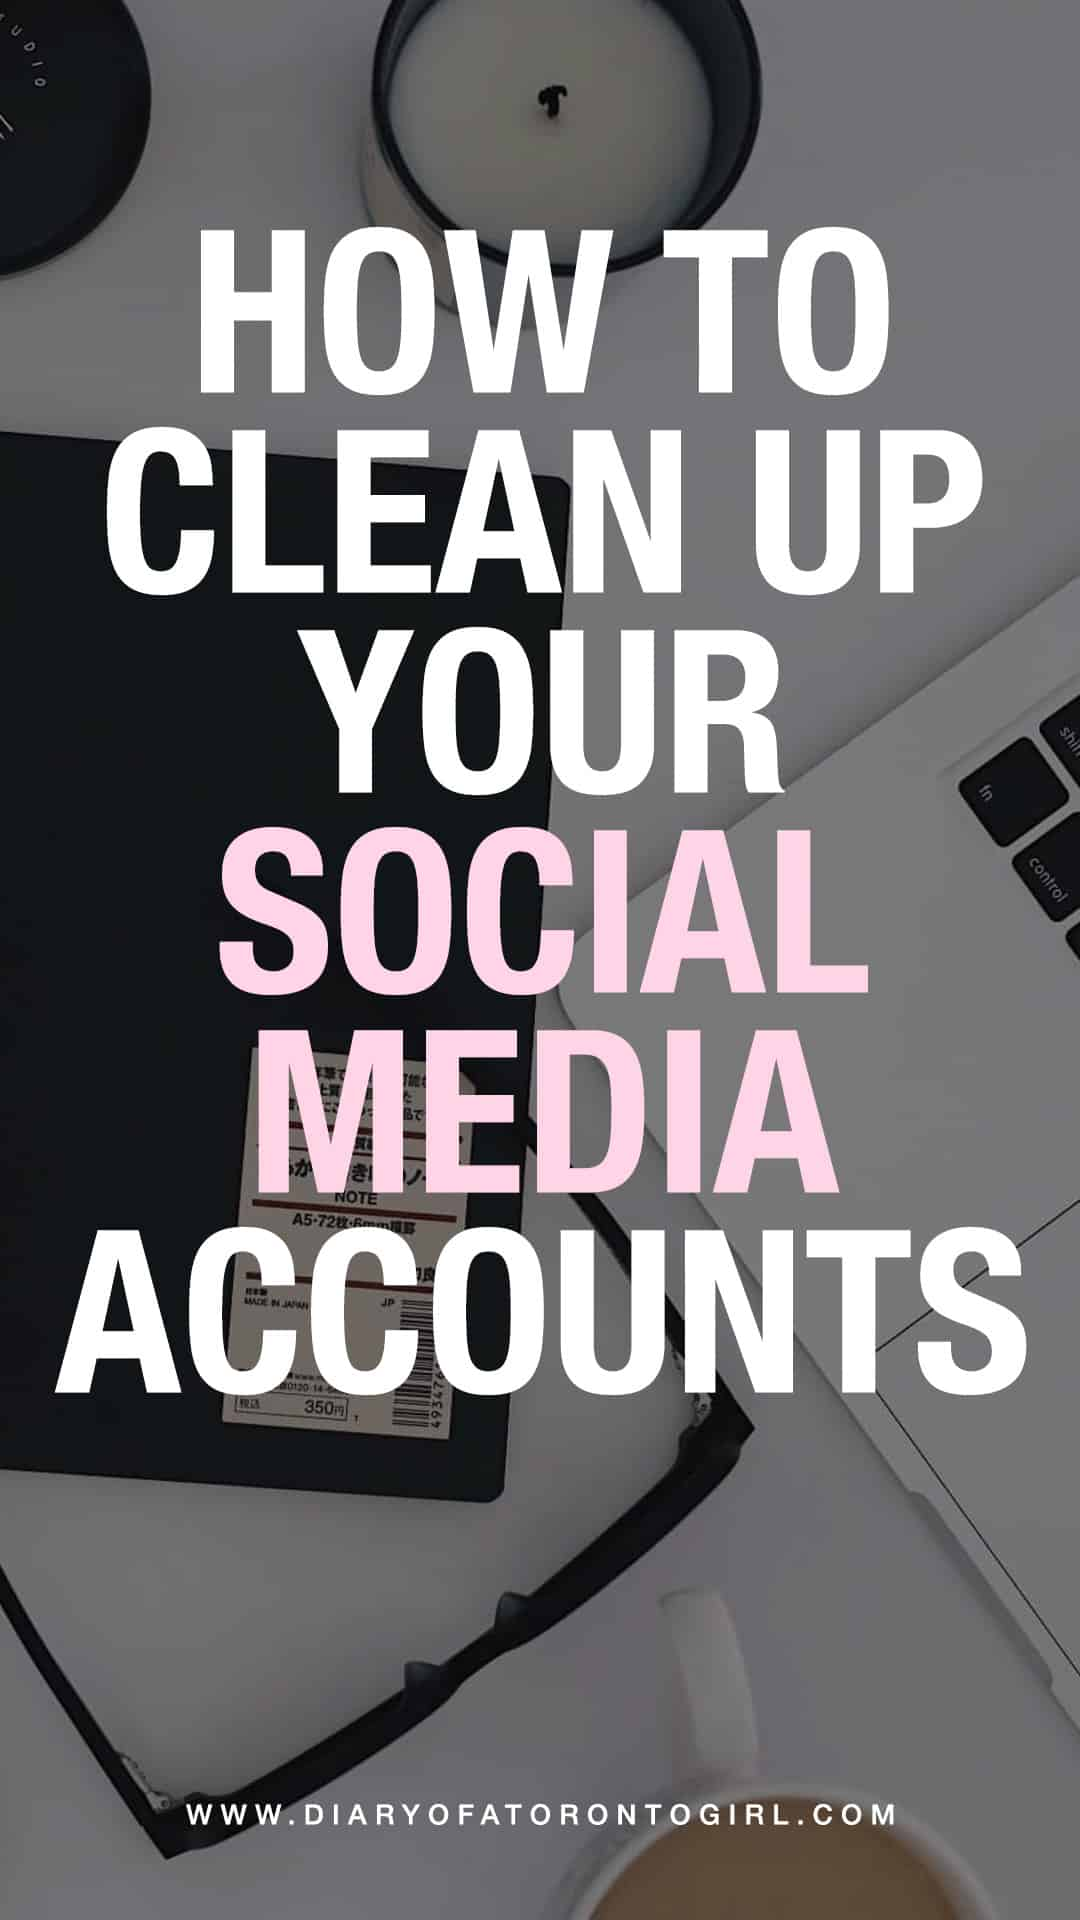 Whether you're job hunting or looking for an internship, here are some helpful tips on how to clean up your social media accounts and online presence!